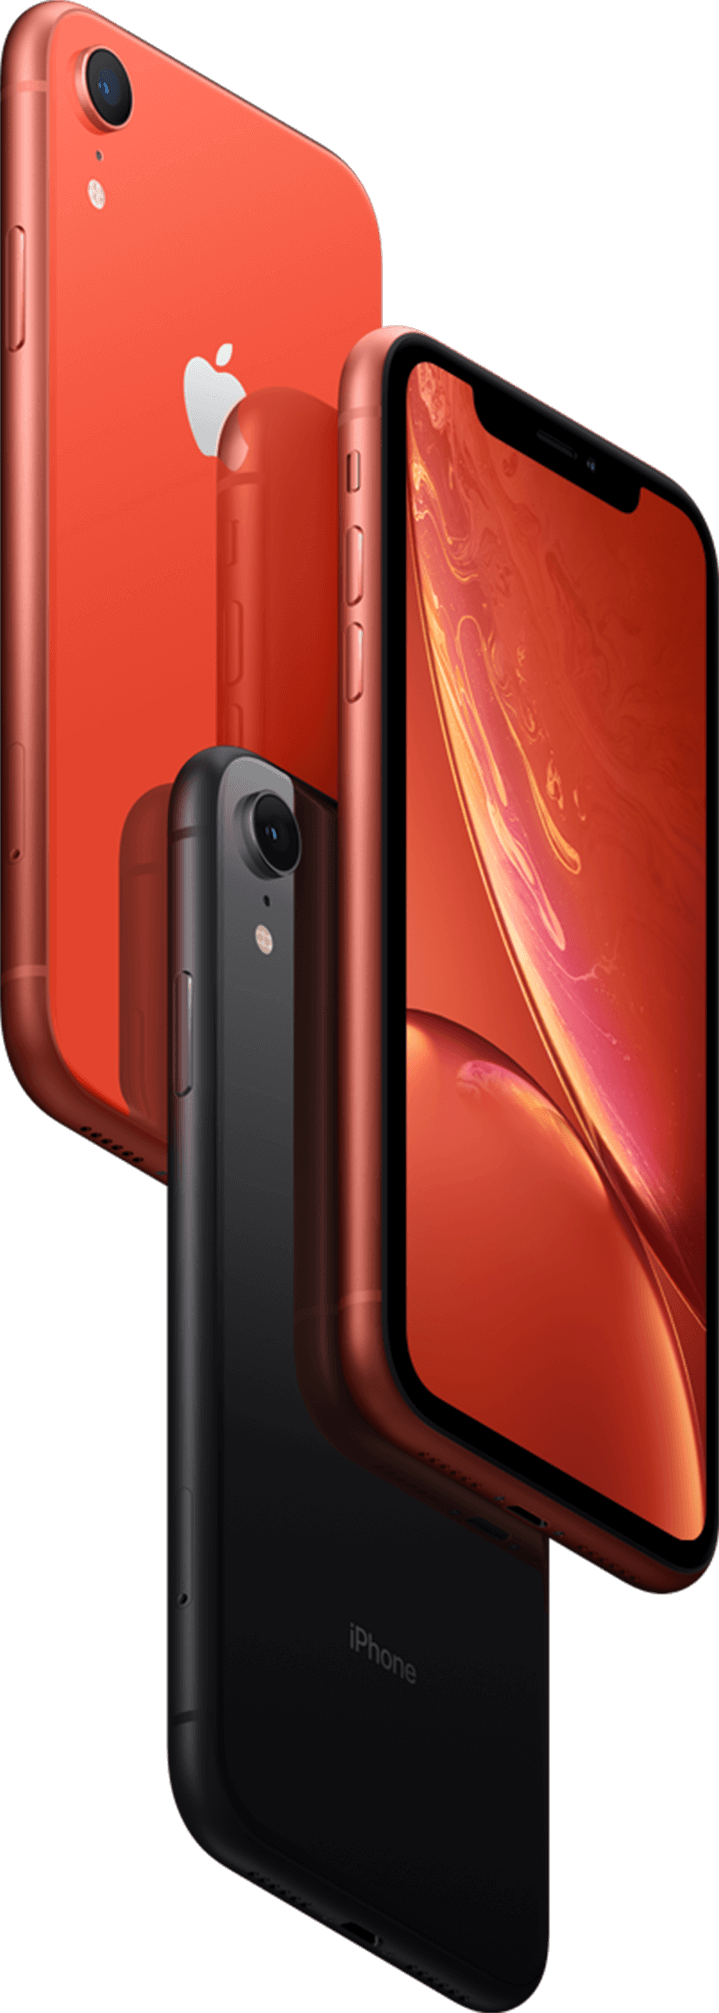 Apple iPhone XR Specs, Features, Colors, Price